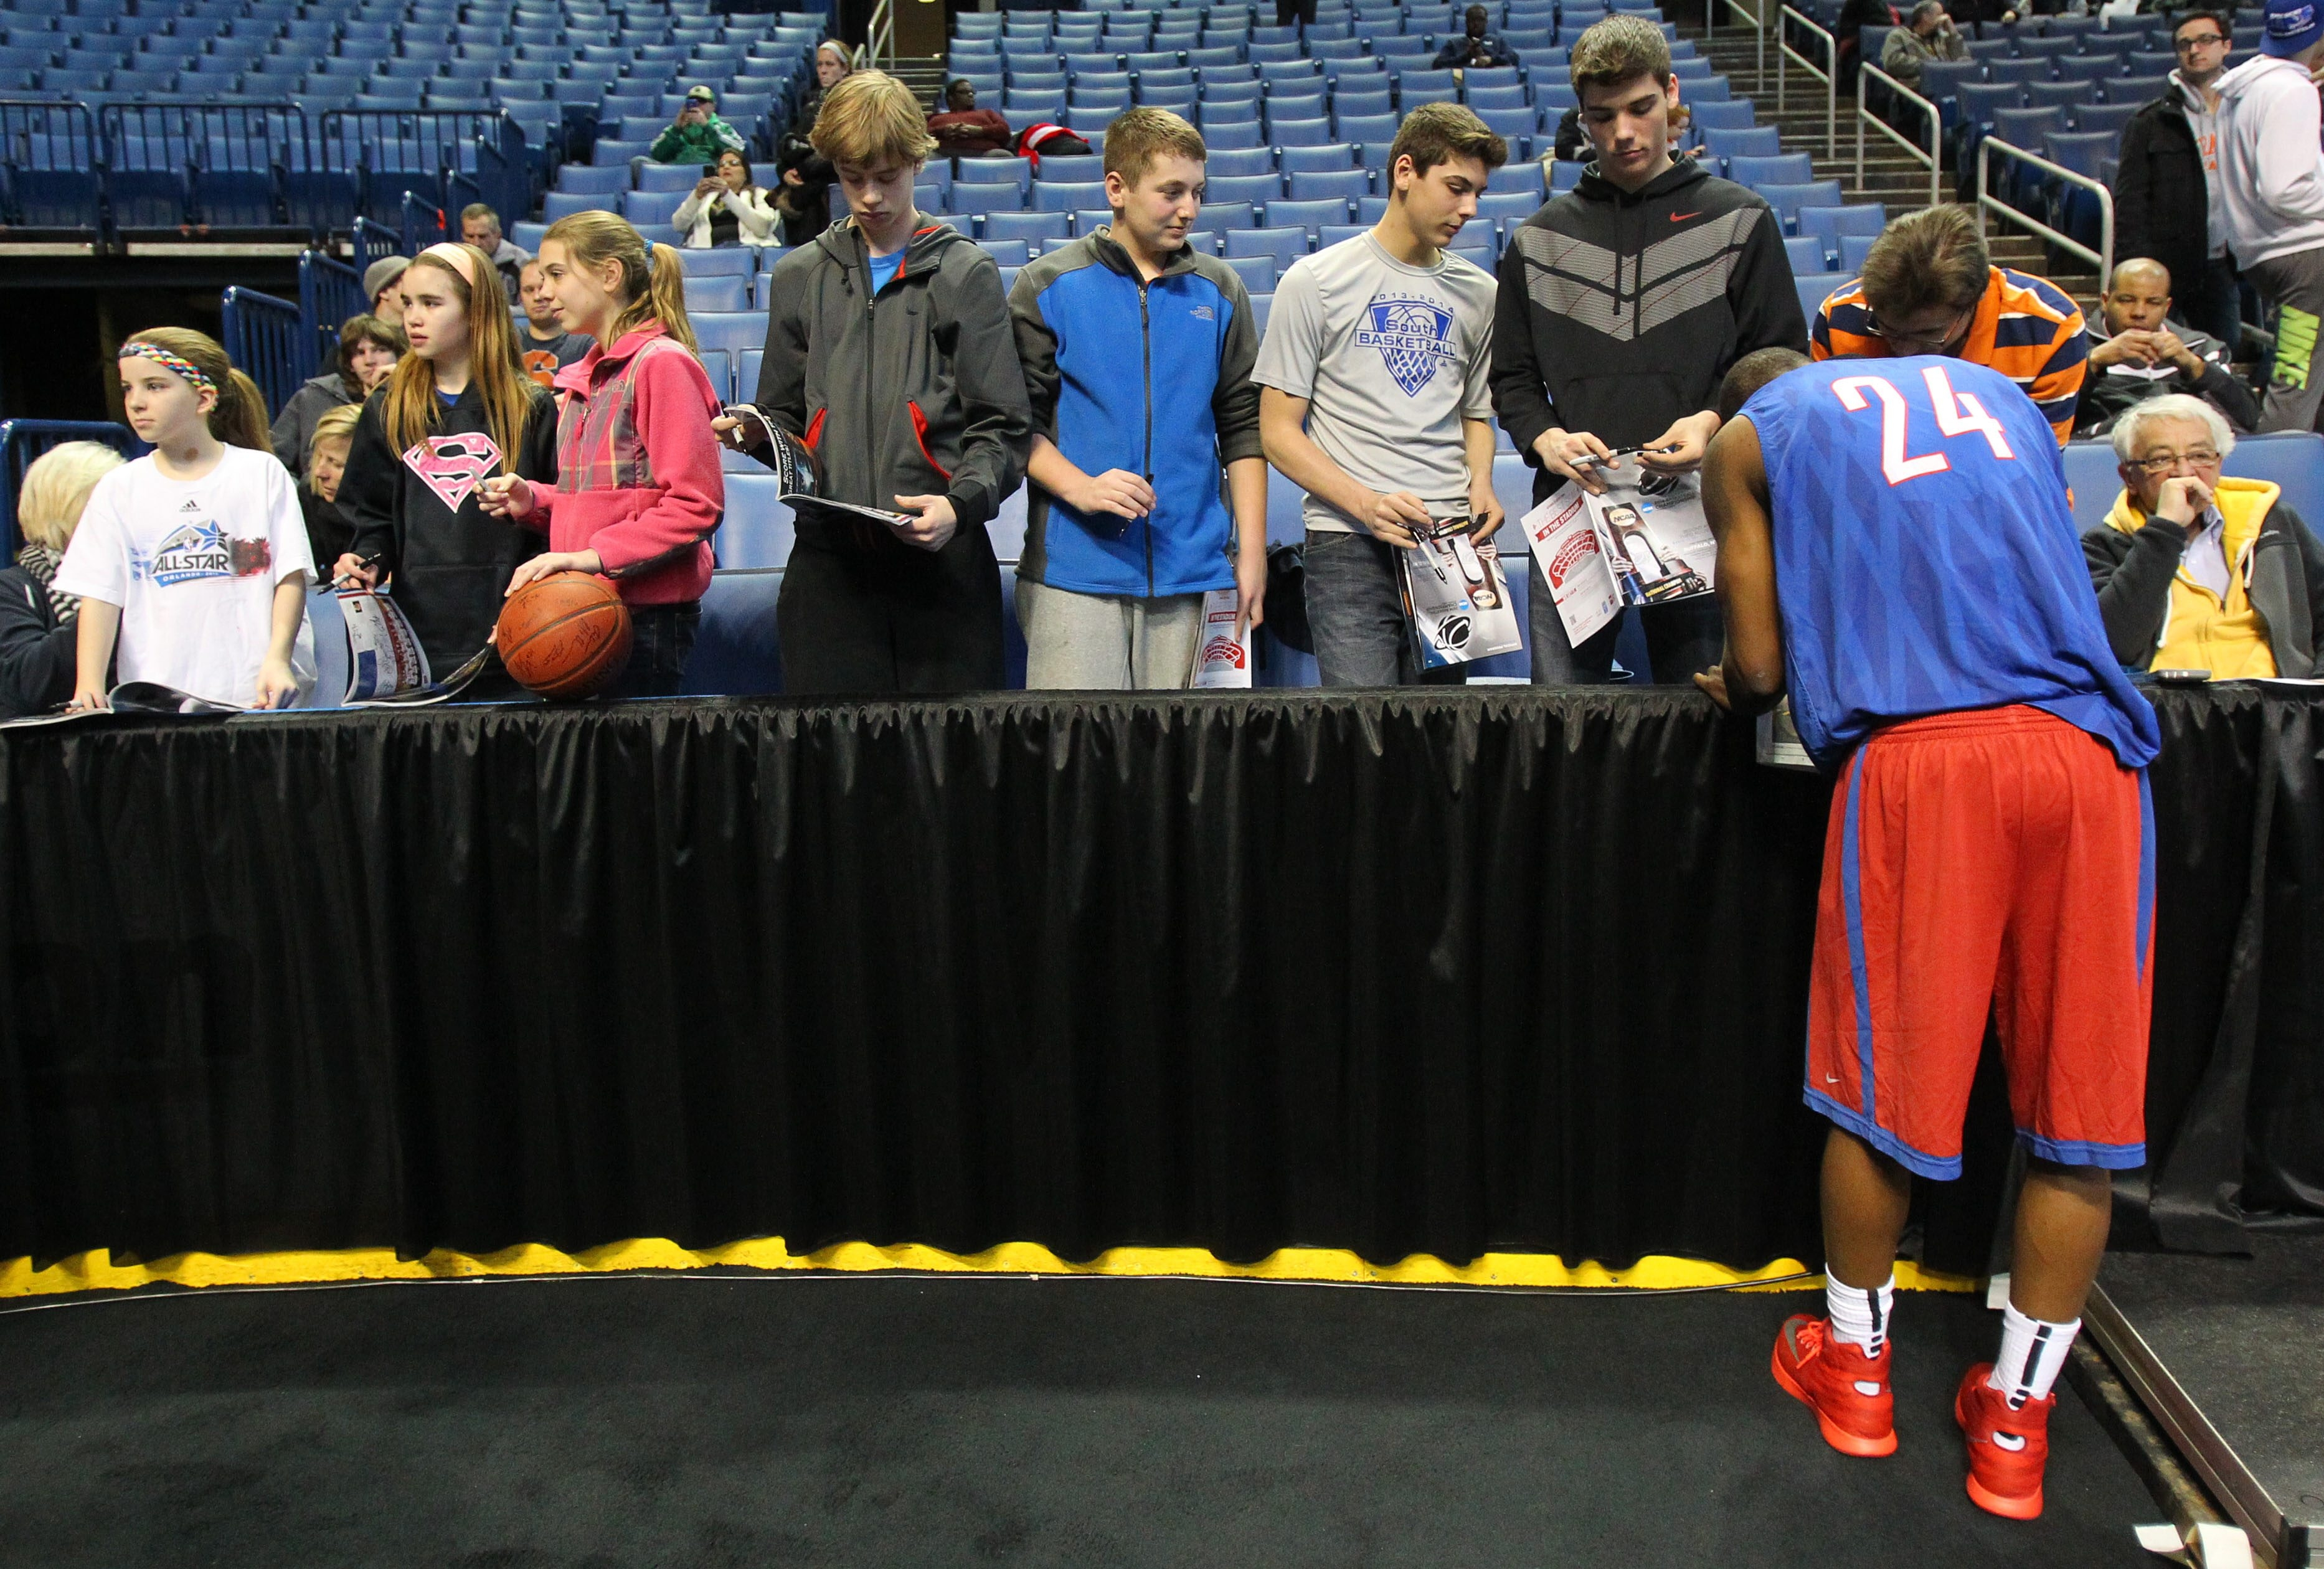 Dayton's Jordan Sibert, who transferred from Ohio State, signs autographs for fans after practice.